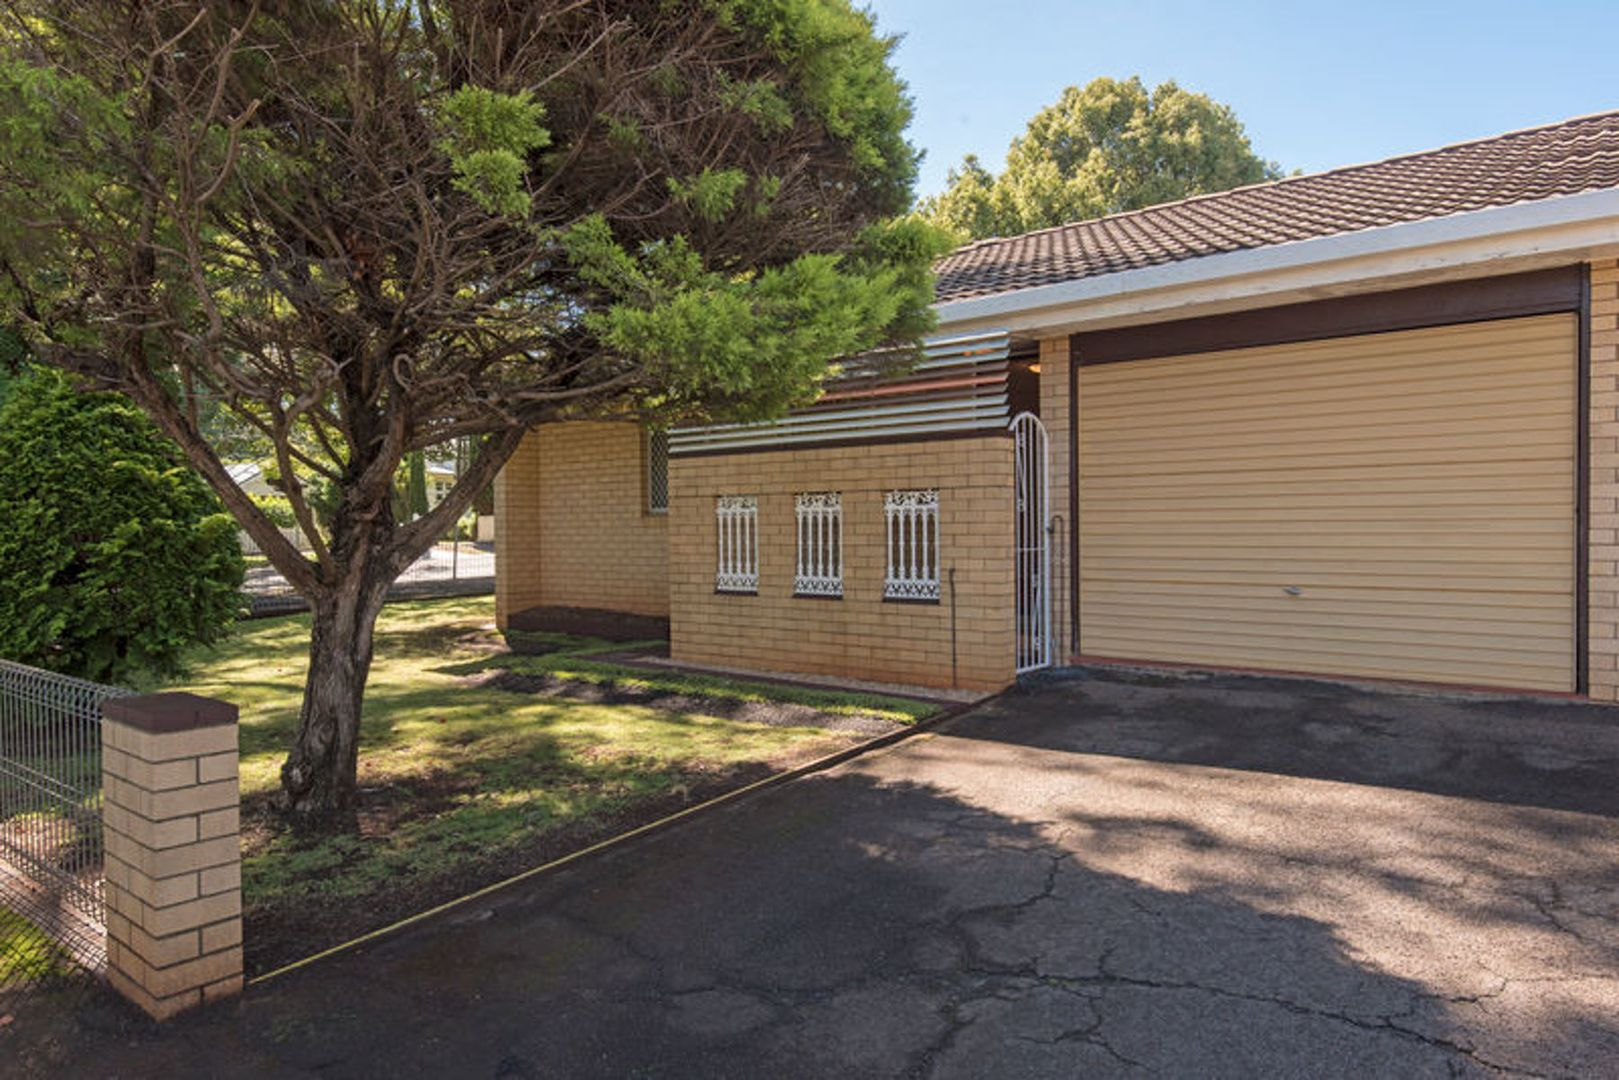 64 Campbell Street, East Toowoomba QLD 4350, Image 1